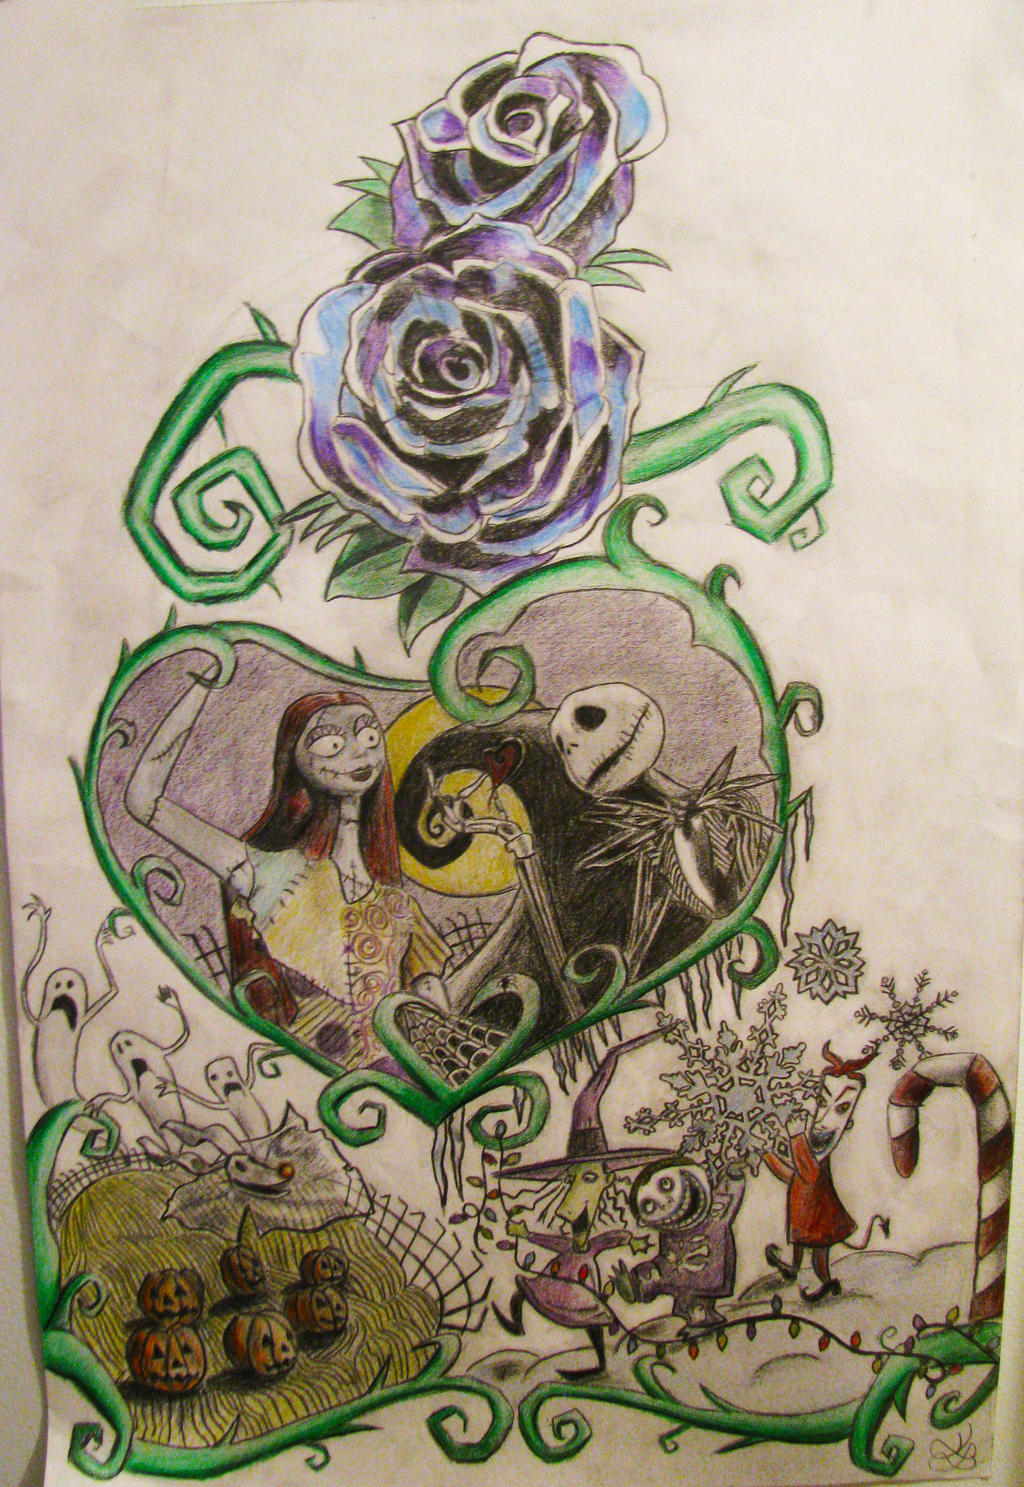 A Nightmare Before Christmas tattoo design by katieluse on DeviantArt